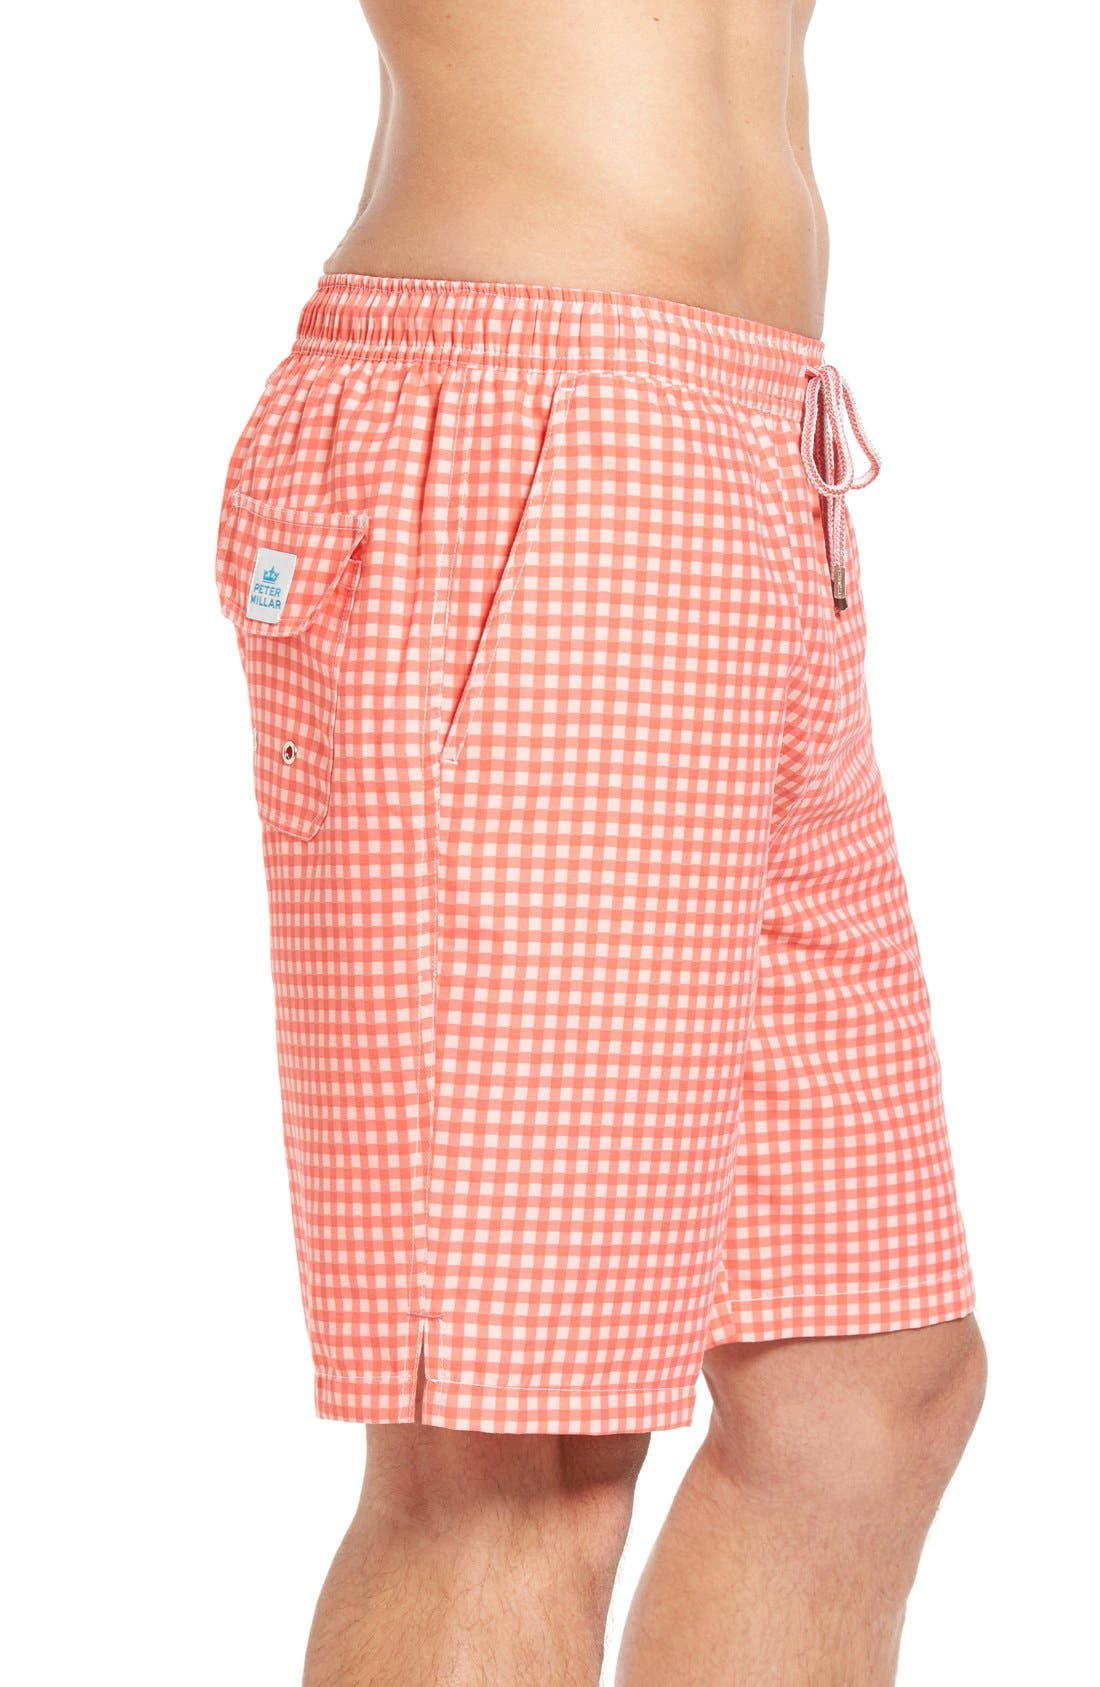 Alternate Image 3  - Peter Millar Gingham Swim Trunks